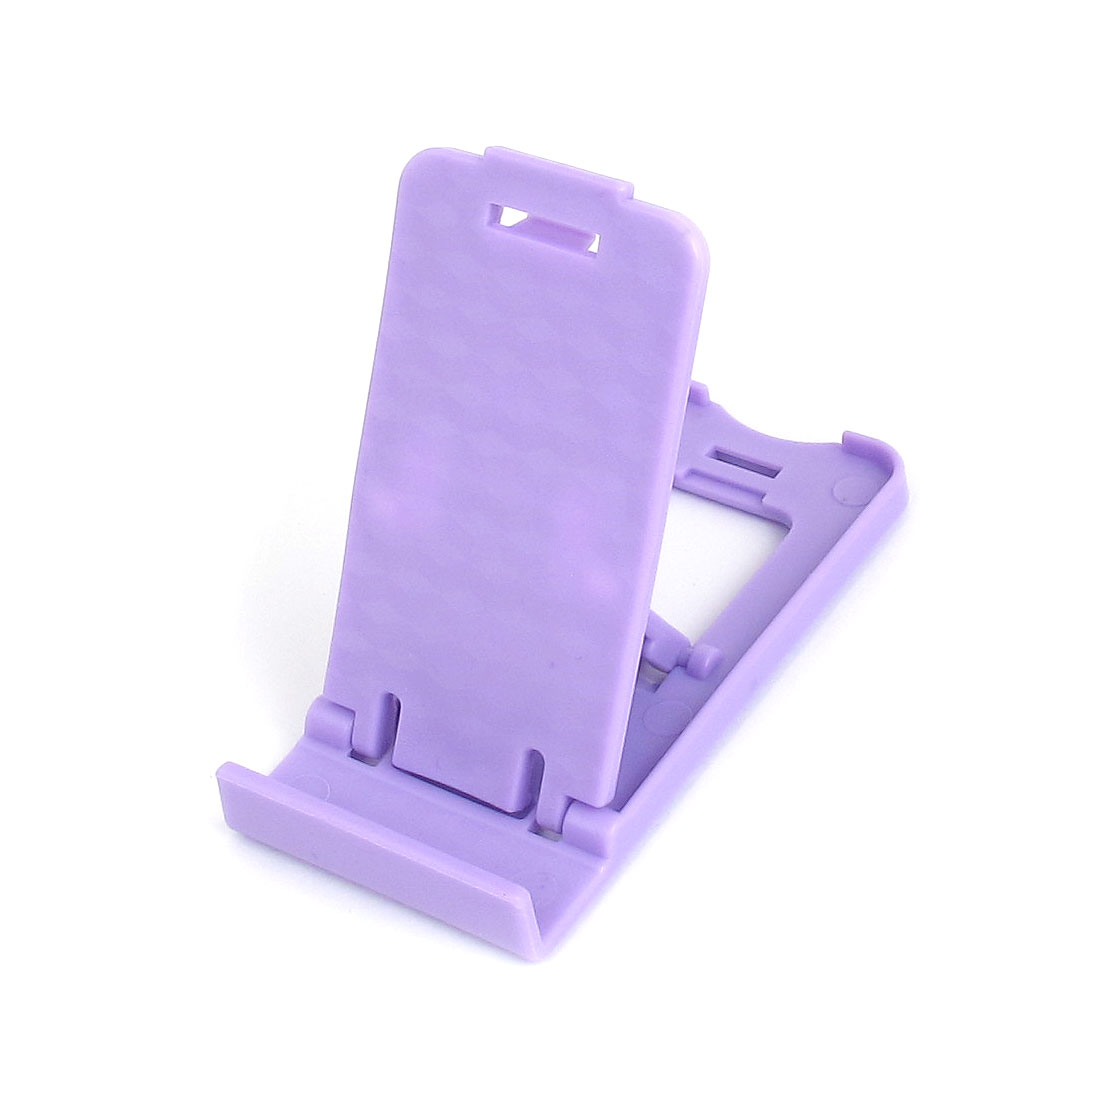 Purple Plastic Folding Stand Holder Stander Support Bracket for MP4 iPad iPhone Cell Phone